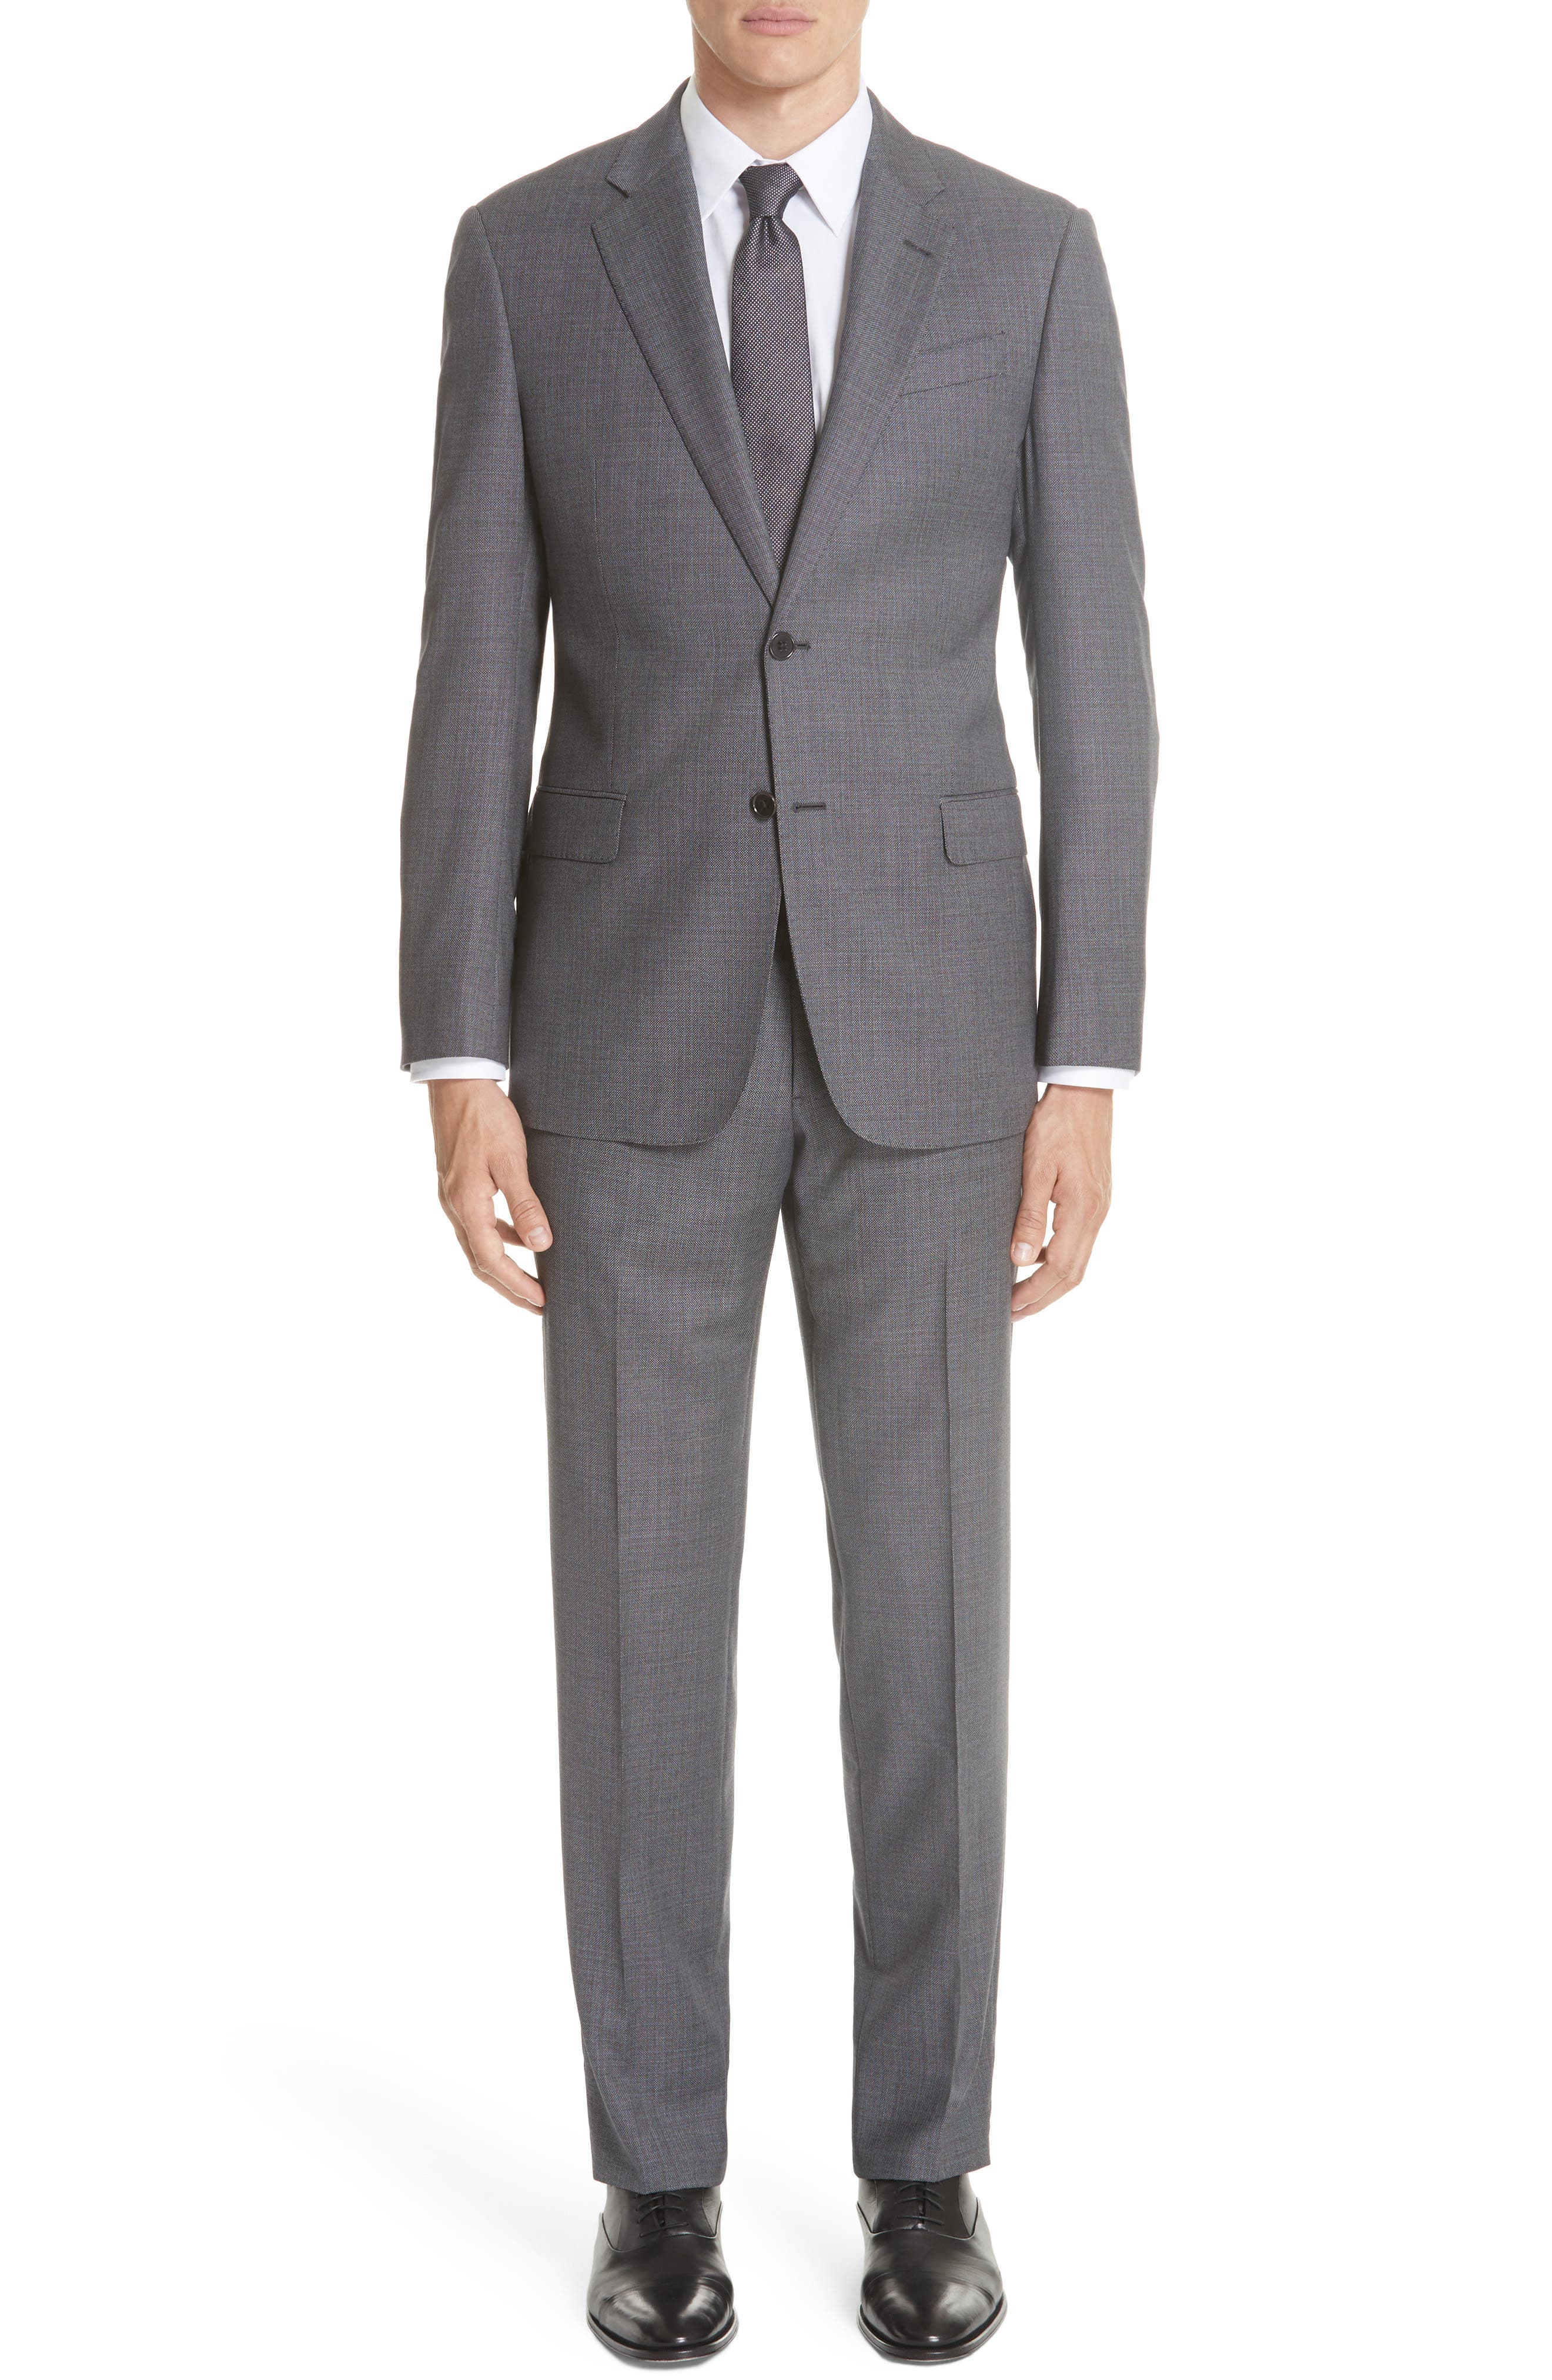 G-Line Trim Fit Bird's Eye Wool Suit,                         Main,                         color, GREY/ LIGHT BLUE